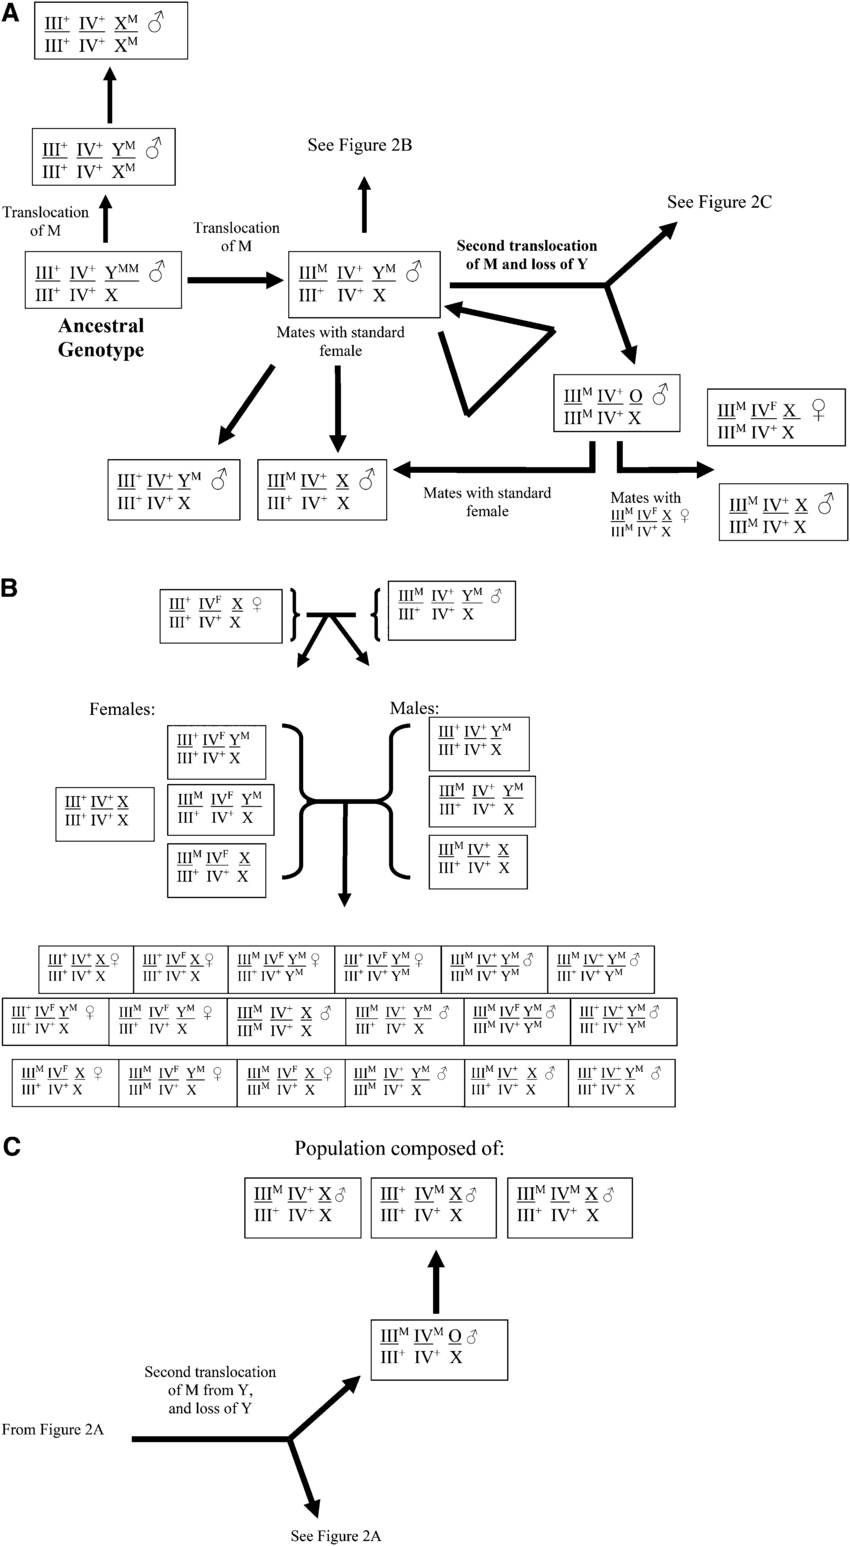 medium resolution of schematic representation of the evolution of changes in the linkage of m and frequency of f md tra d in the house fly m domestica